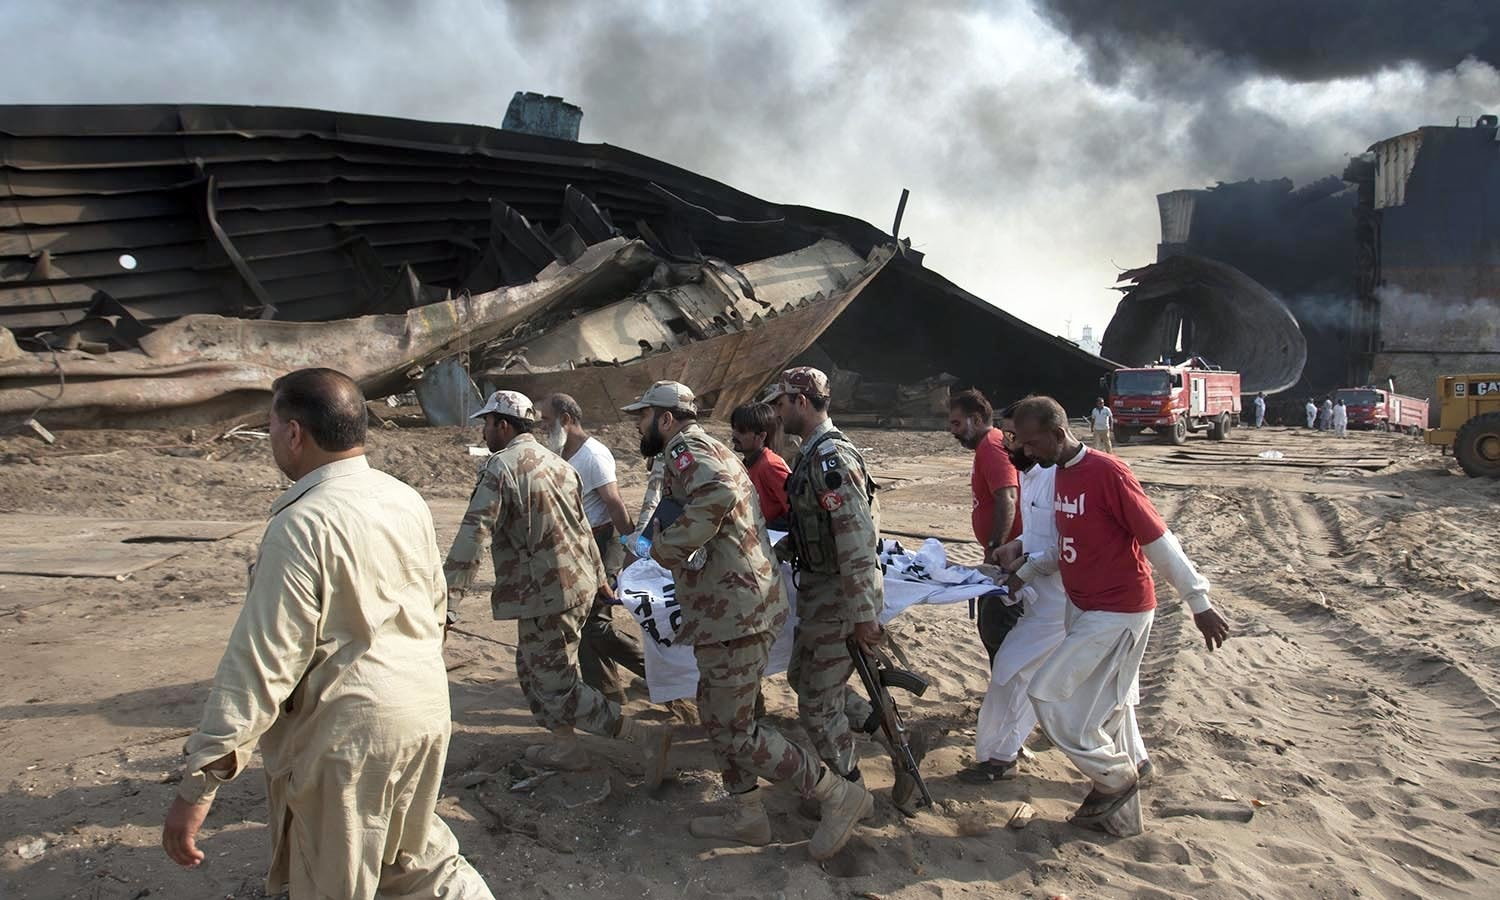 Security officials carry a body following an explosion and  fire on a ship, in the coastal town of Gadani.─AP